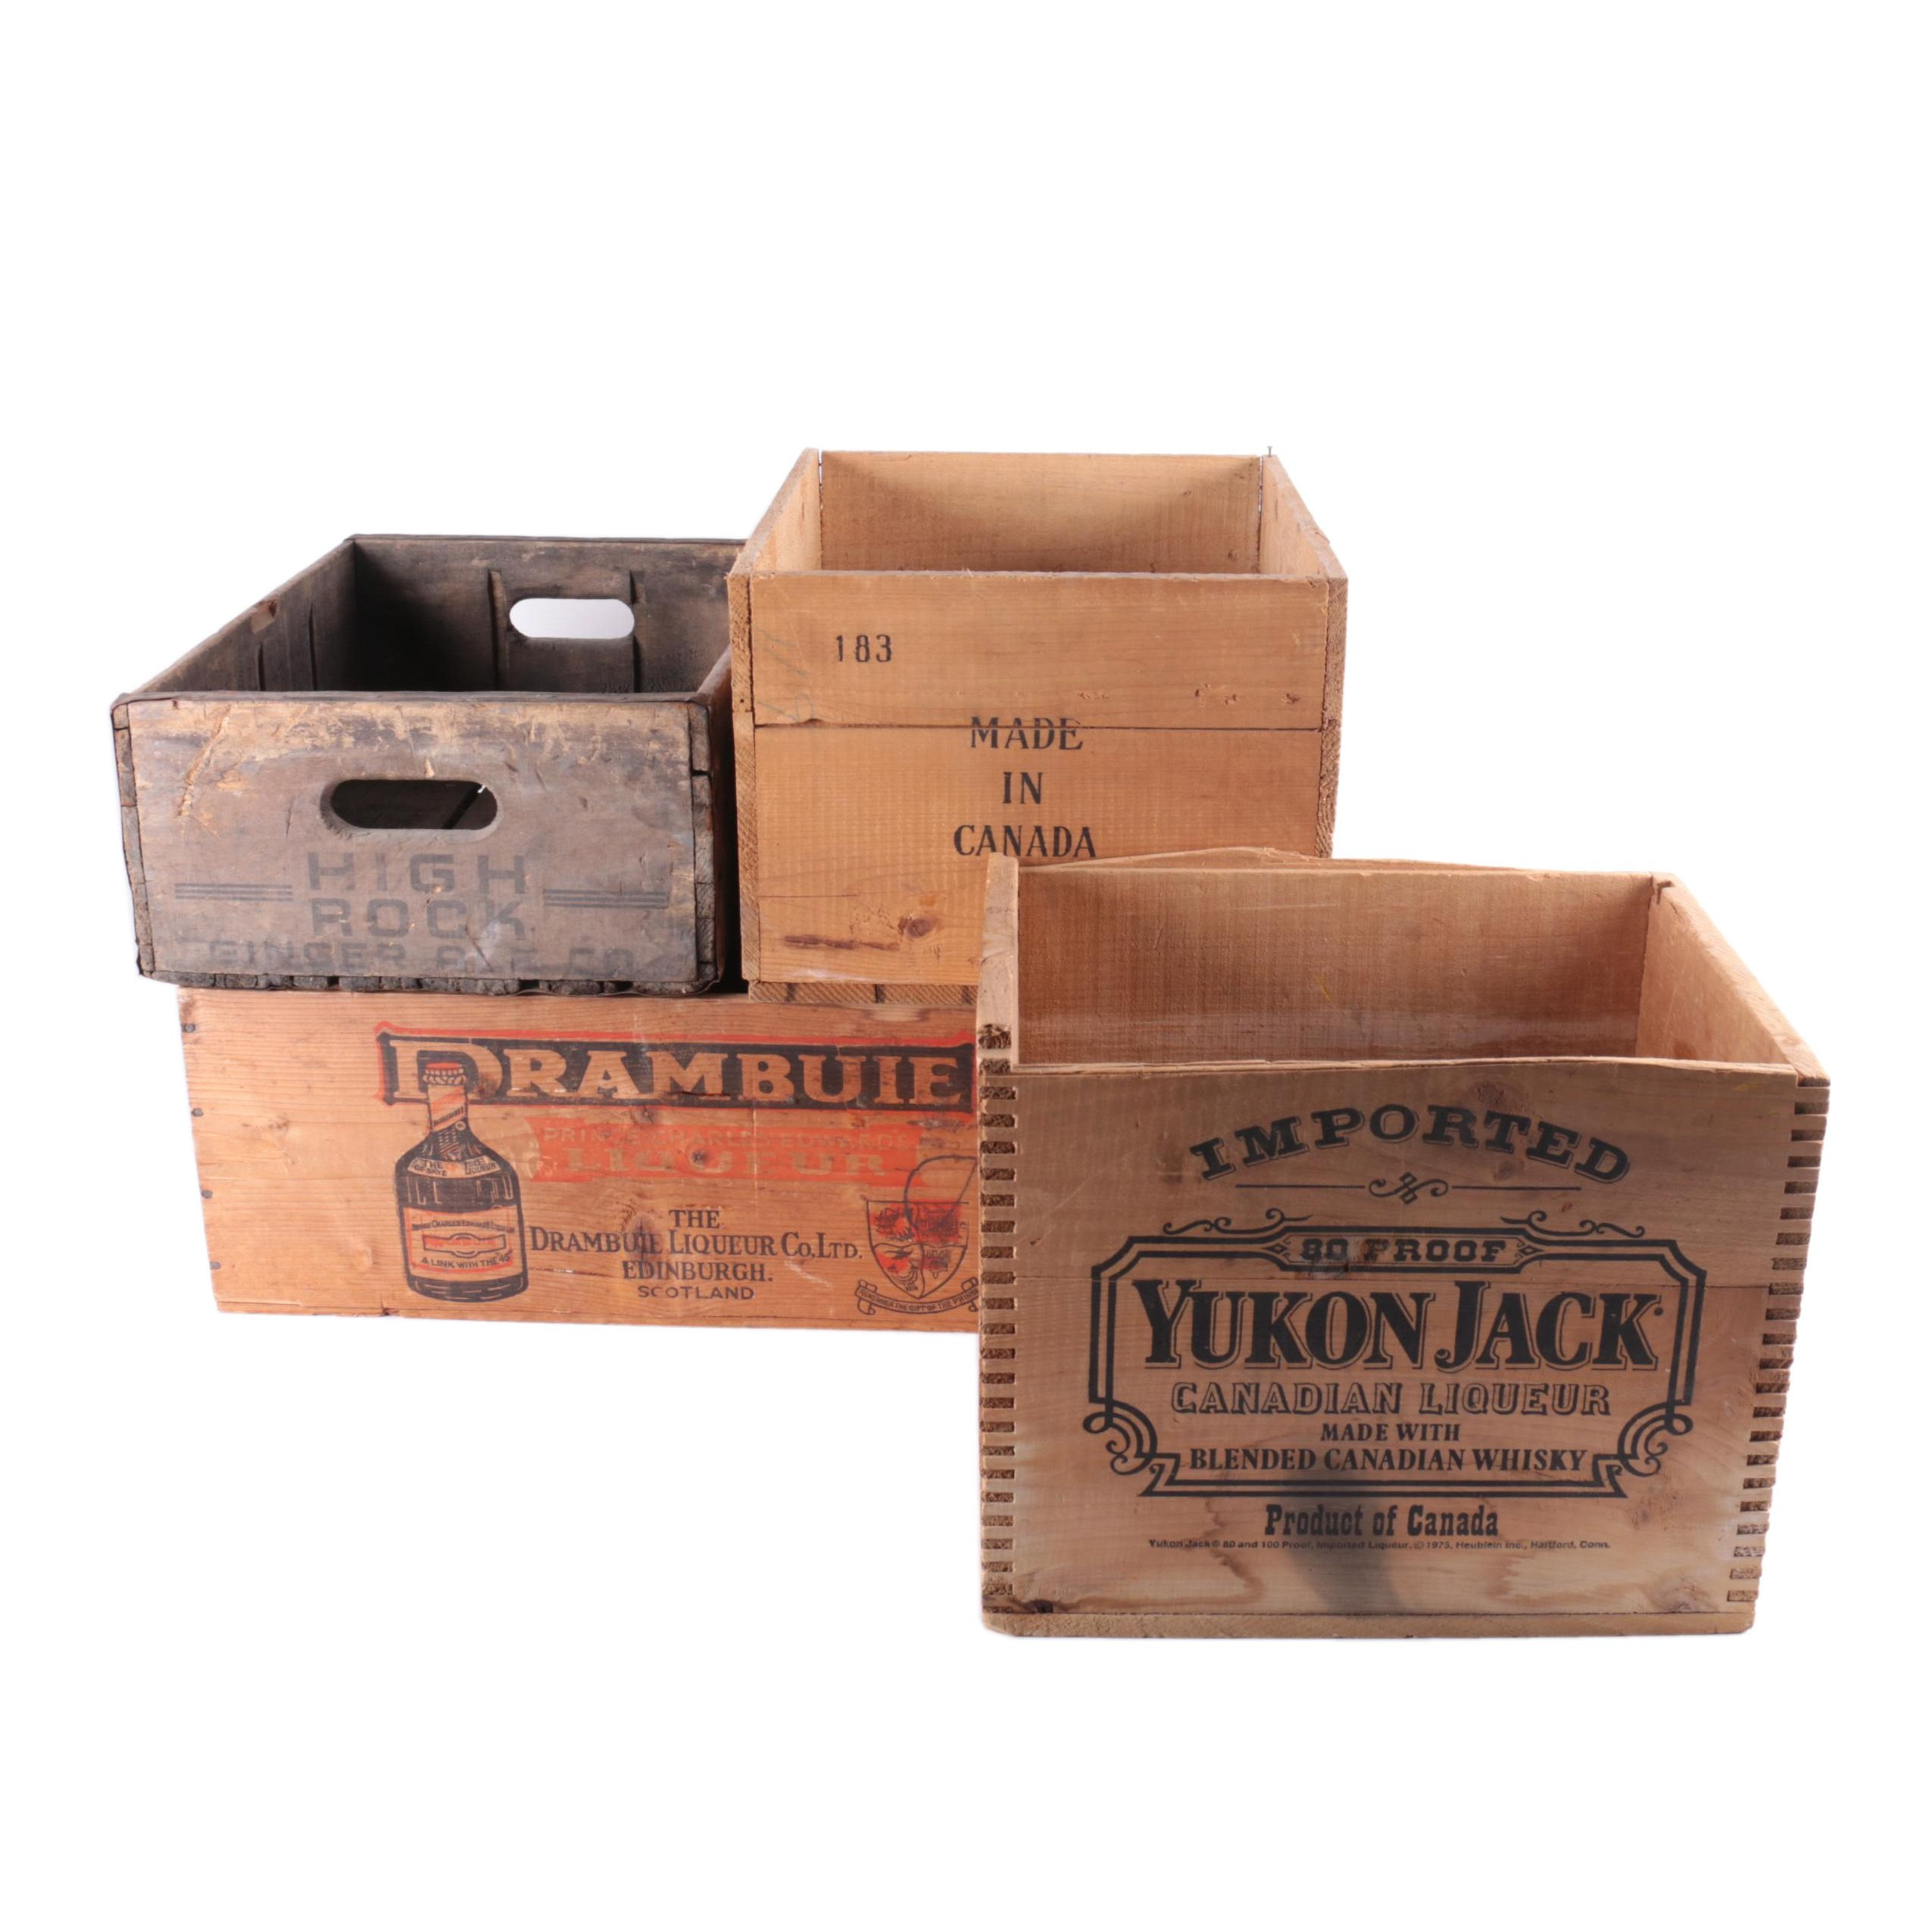 Vintage Yukon Jack, Drambuie and Other Wooden Crates